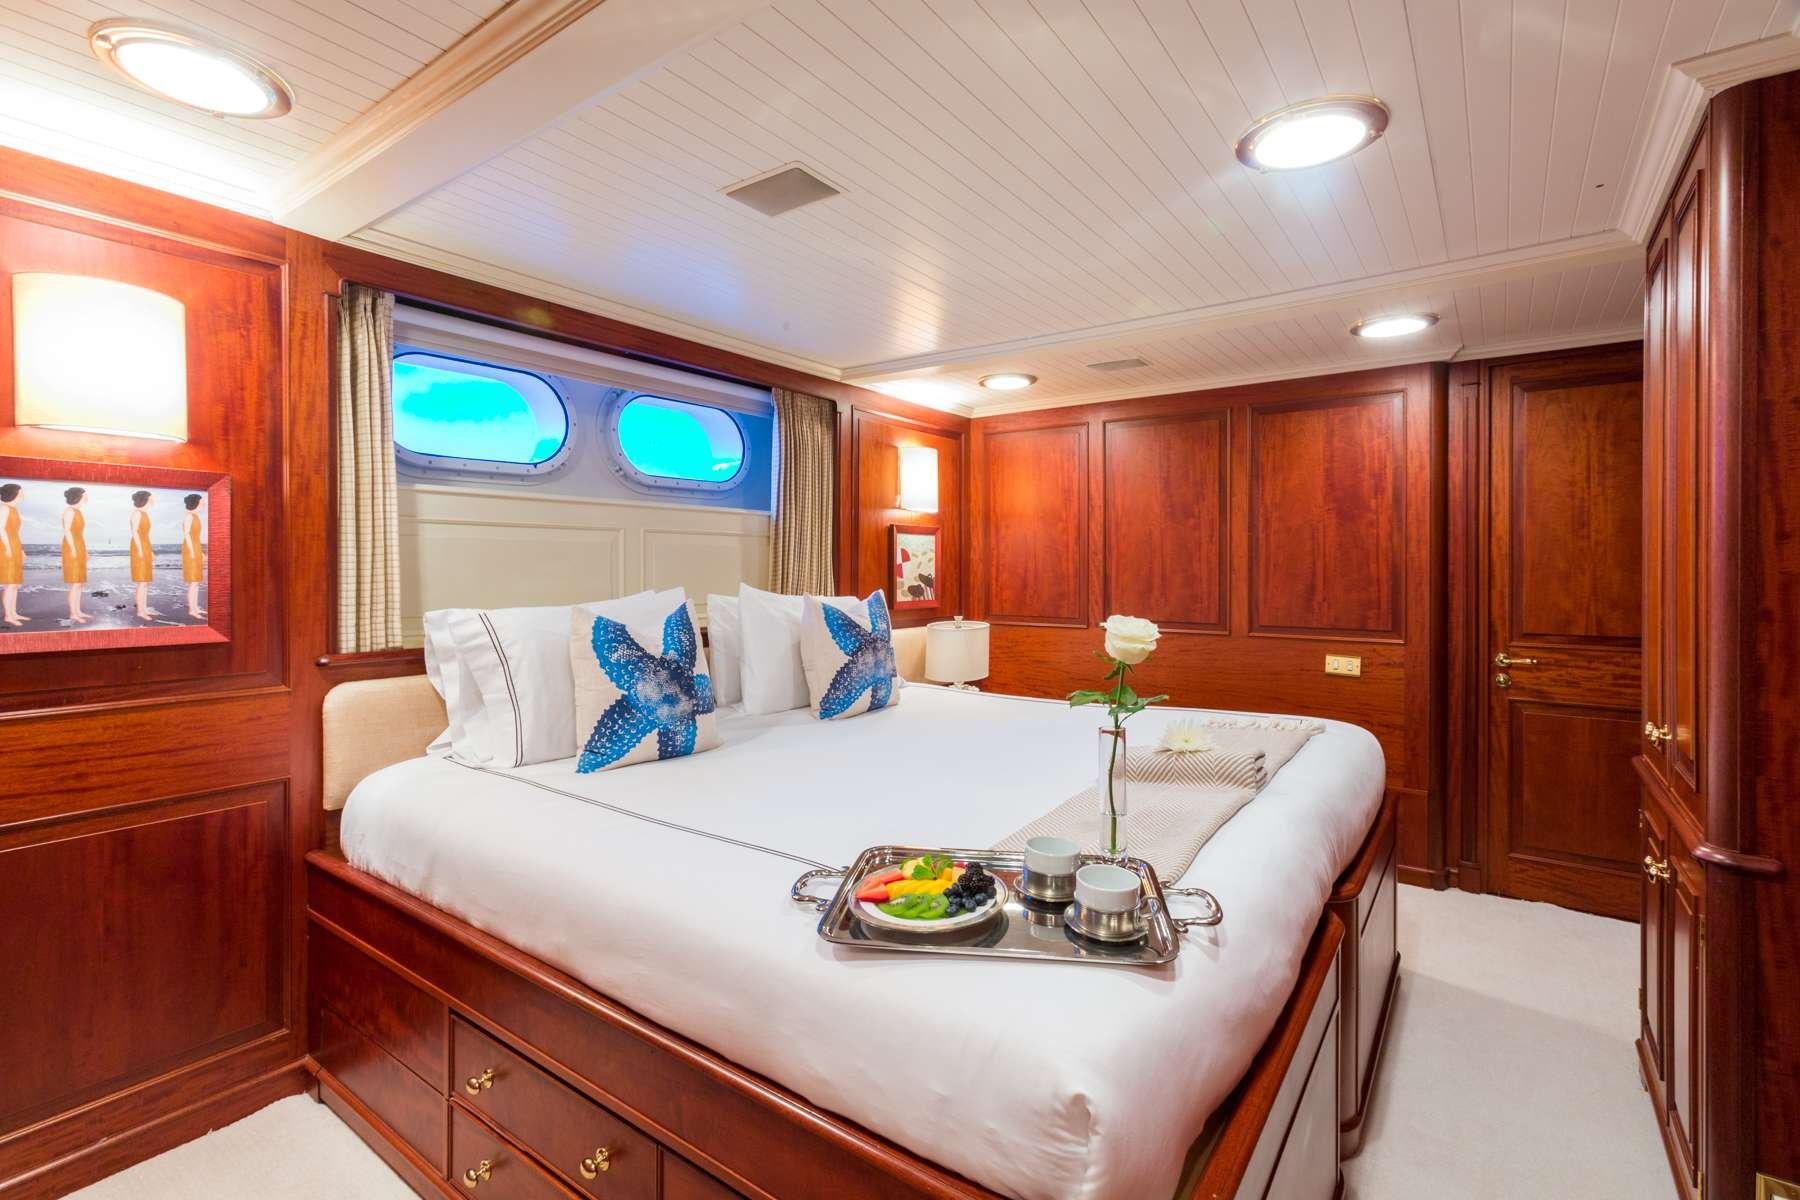 Motor Yacht 'LADY J' King-to-Twin Stateroom, 12 PAX, 9 Crew, 142.00 Ft, 43.00 Meters, Built 1997, Palmer Johnson, Refit Year 2017